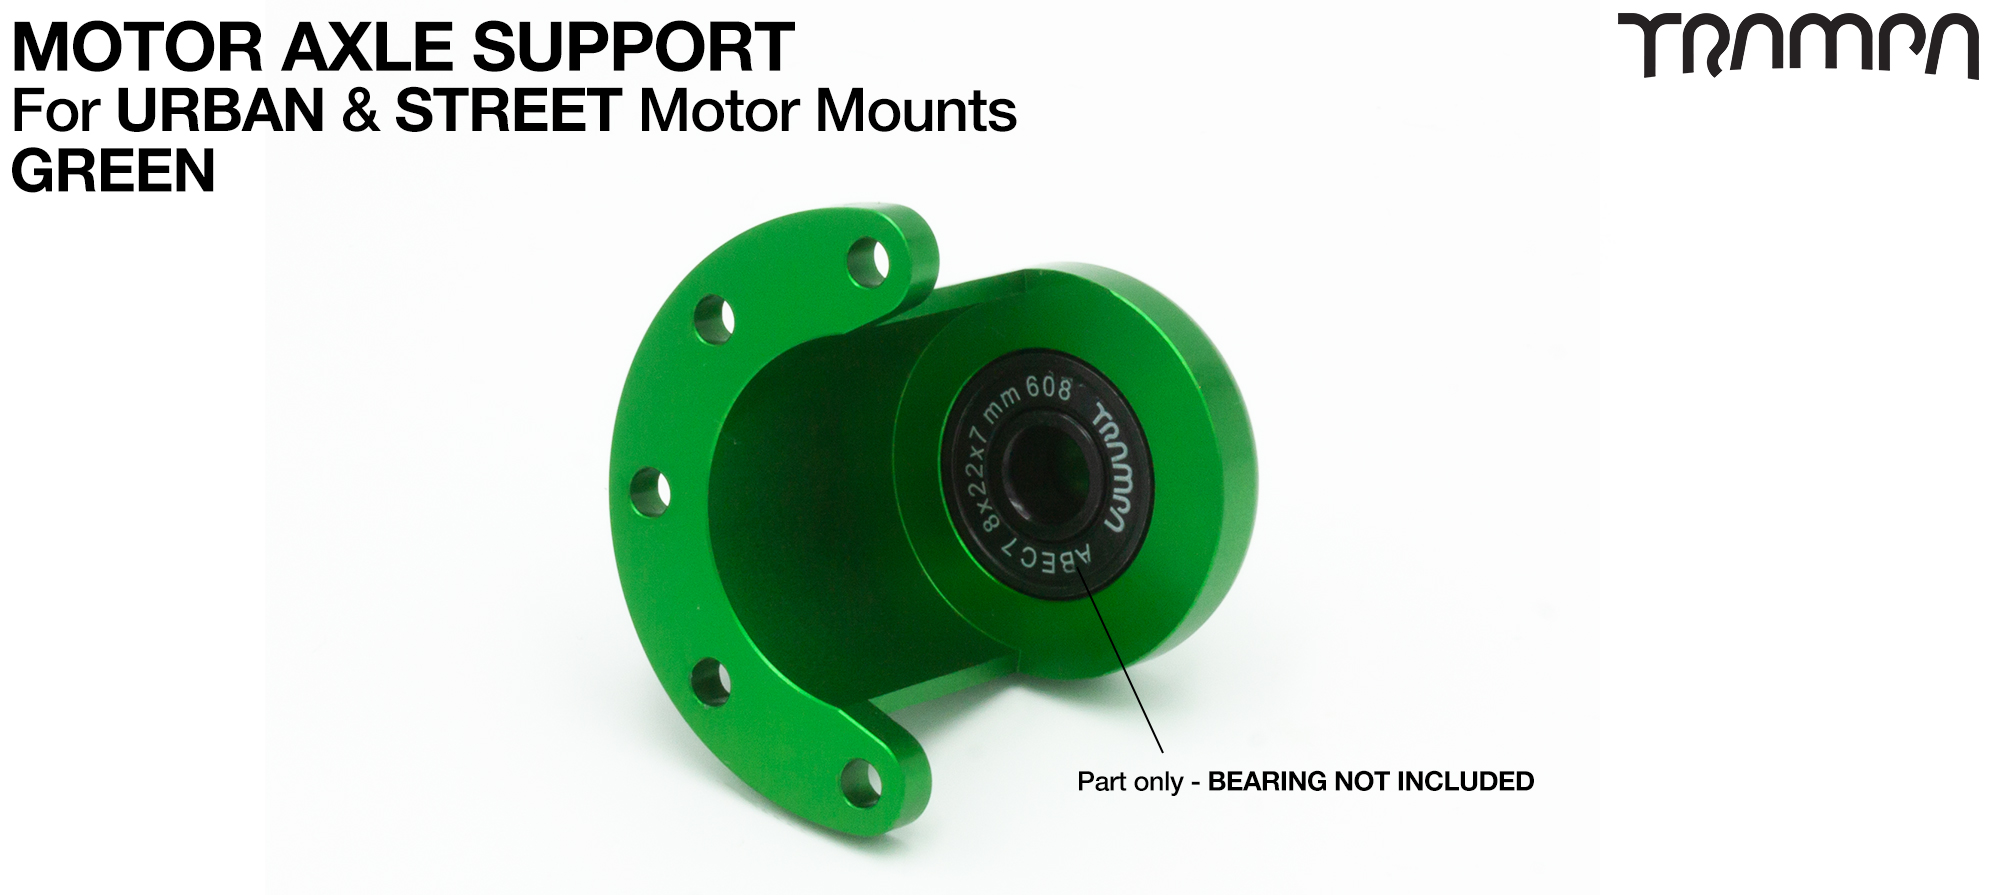 Universal Motor Axle Support - GREEN